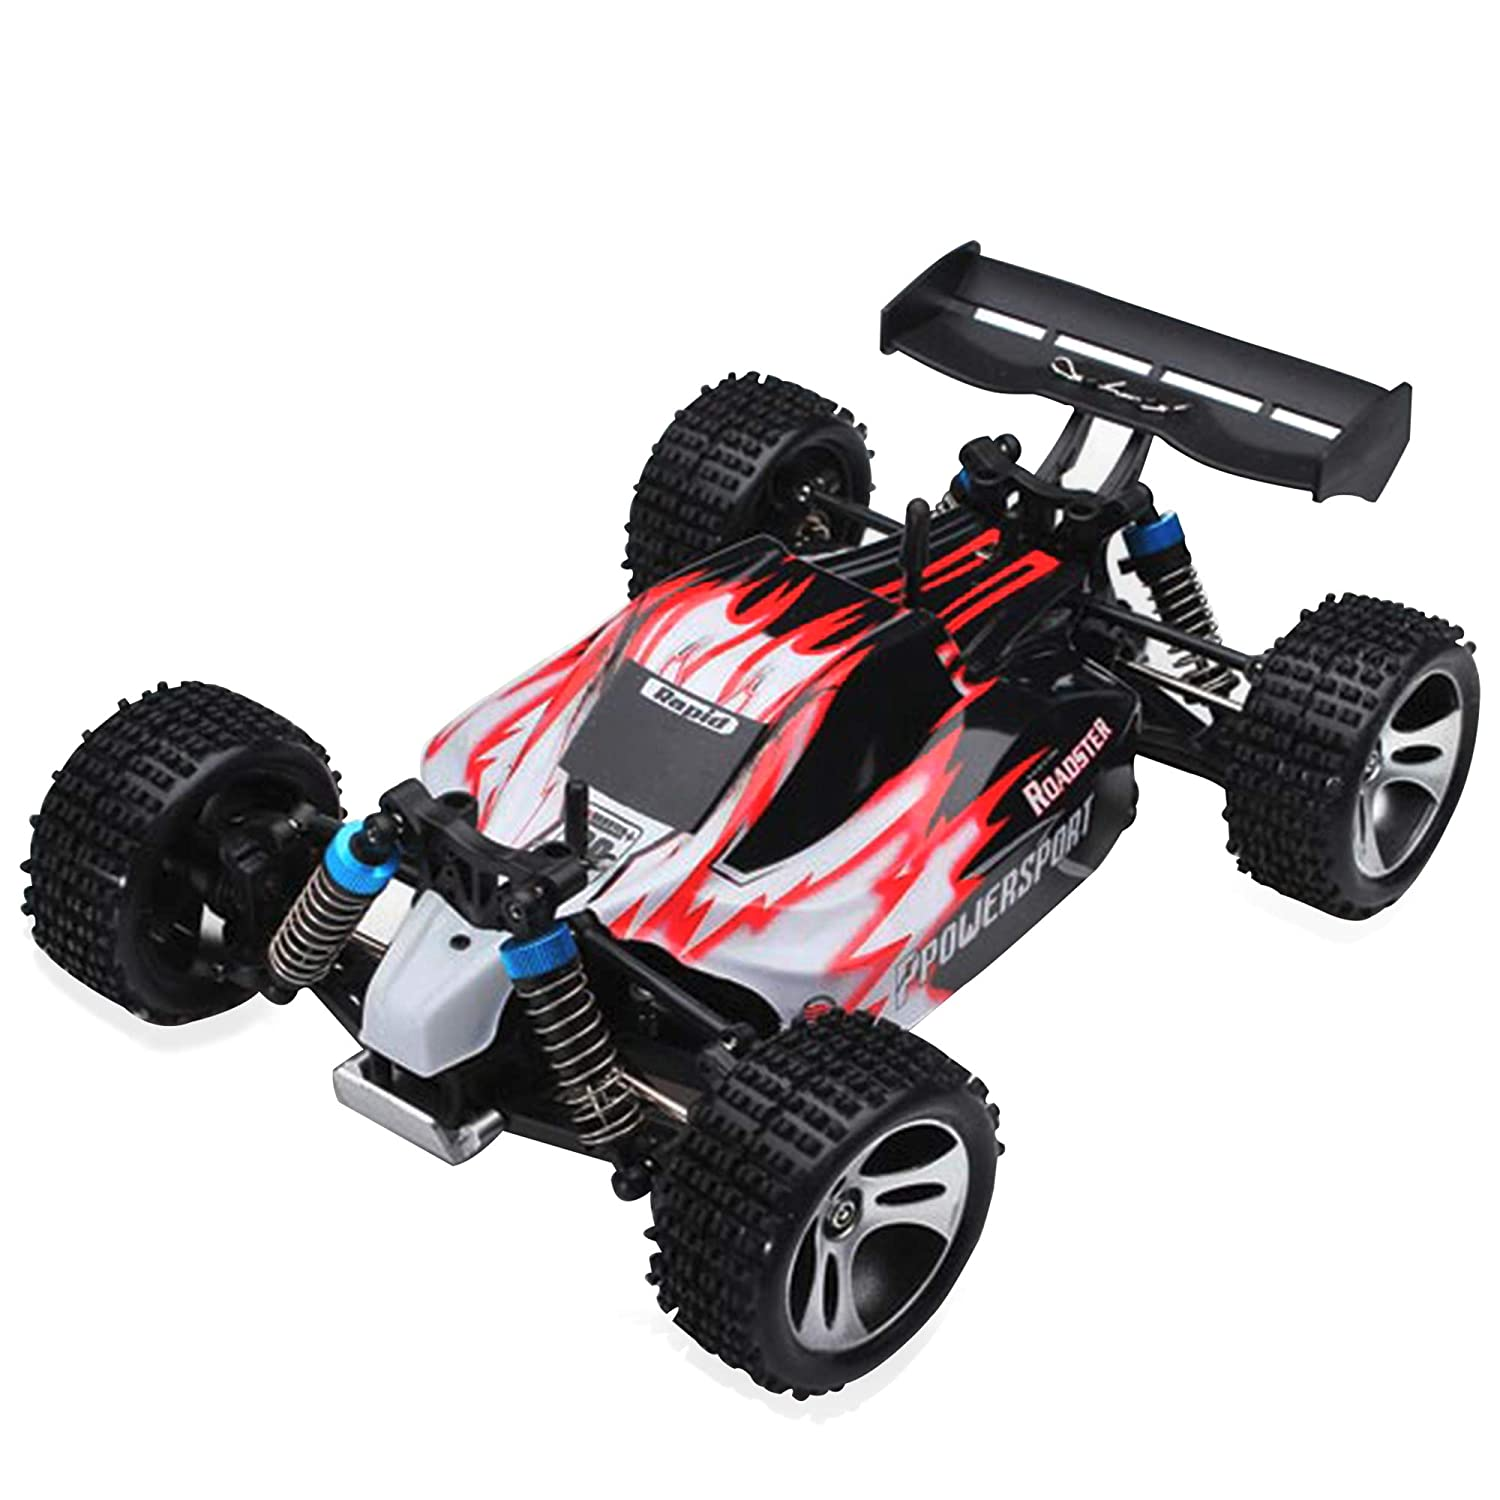 Buy Tygatec Supersonic High Speed Rc Car 55km Per Hour Hobby Grade 4 Wheel Drive 1 18 Scale All Terrain Super Fast Professional Remote Control Car Shock Proof